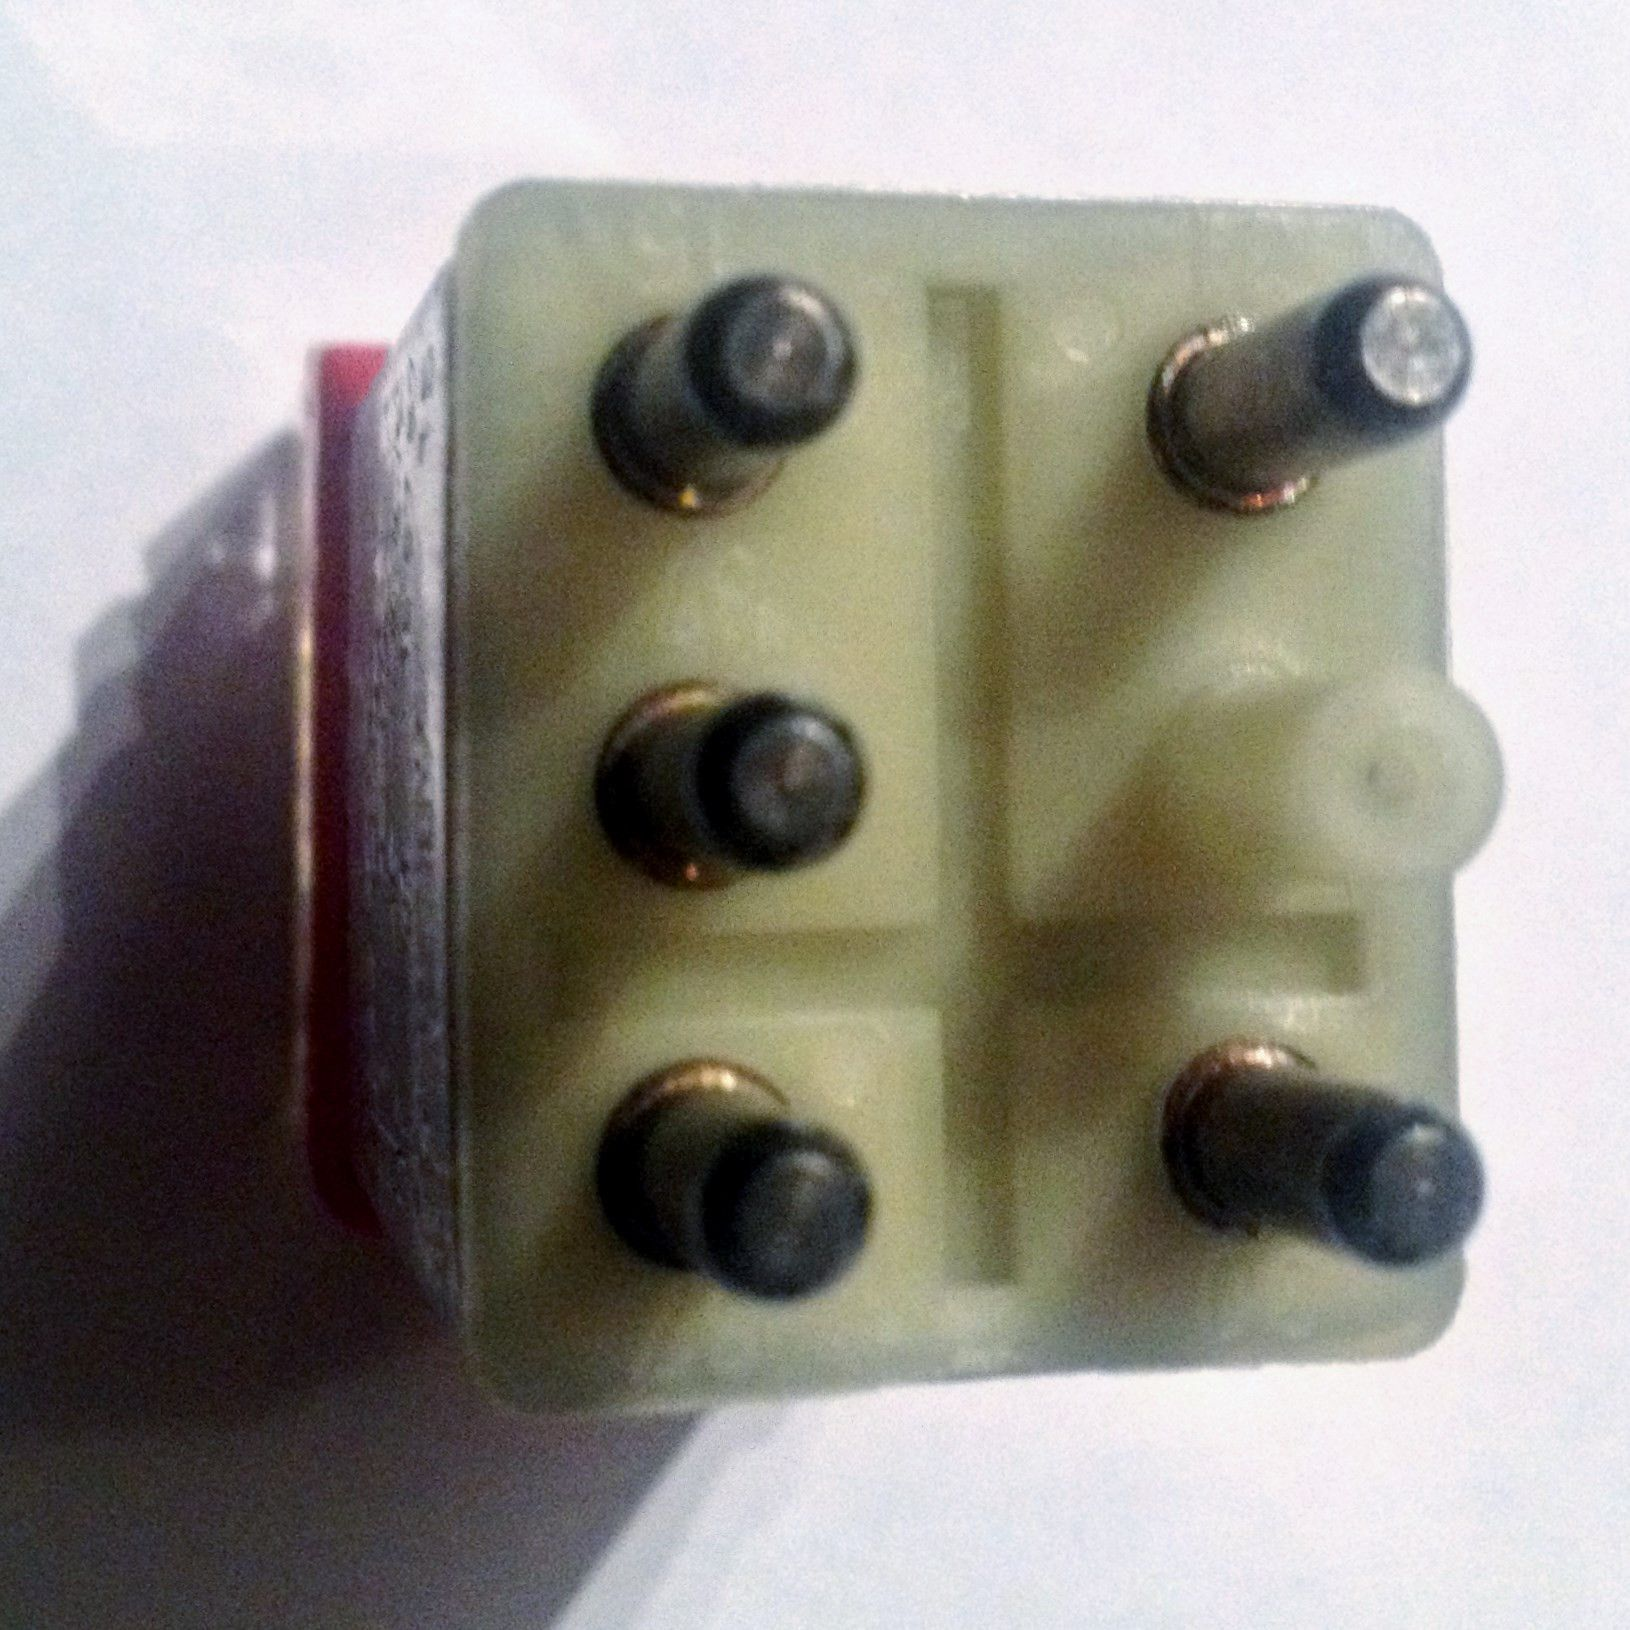 hight resolution of new mercedes benz w107 unit control module fuse box with fuse